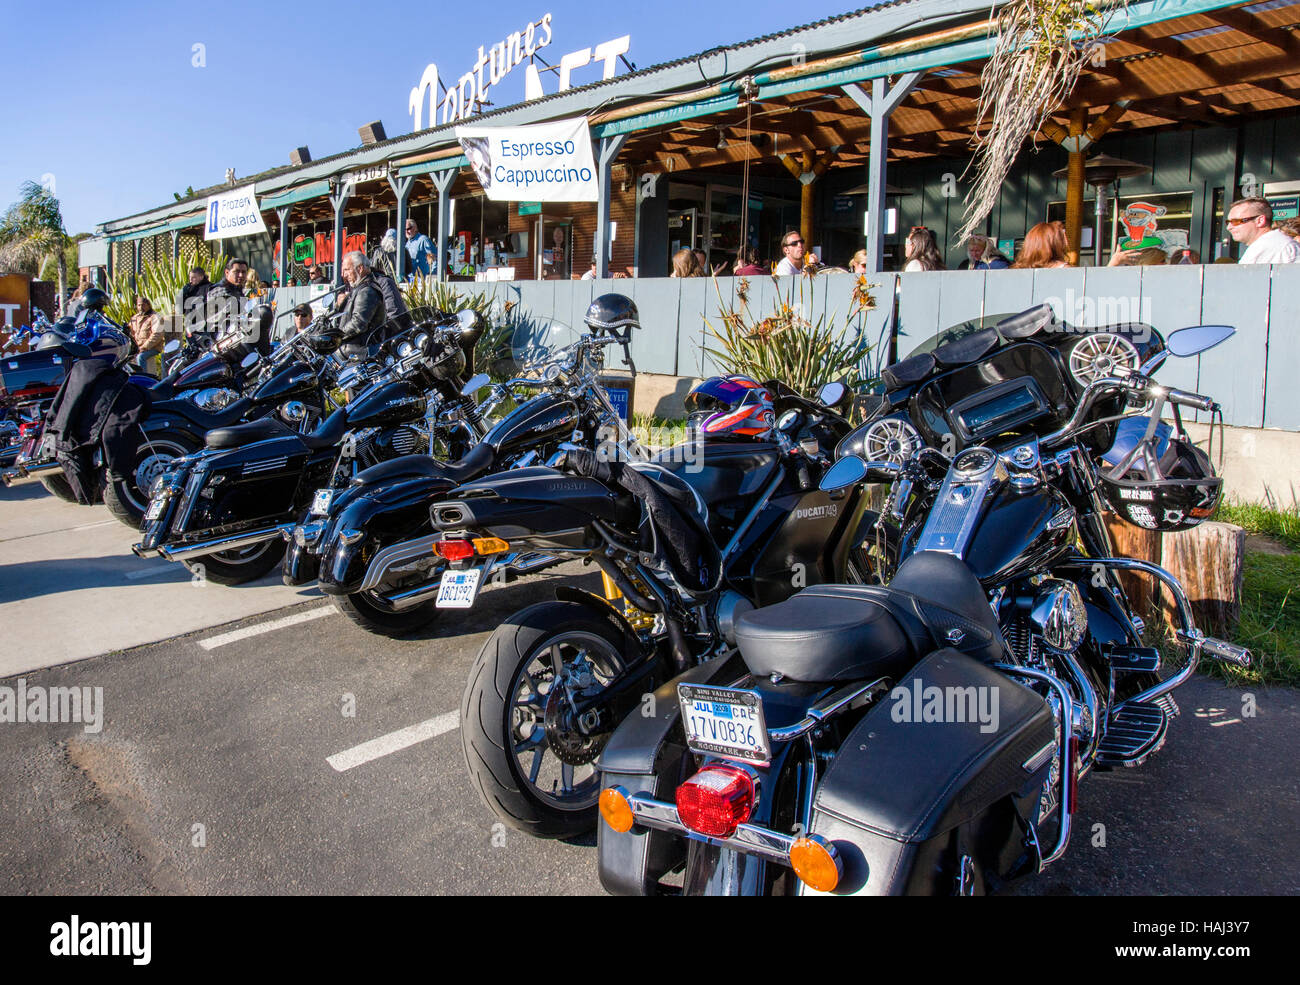 Harley Davidson motorcycles parked in front of the Neptune's Net Seafood Restaurant on Rt. 1 in Malibu, California, - Stock Image